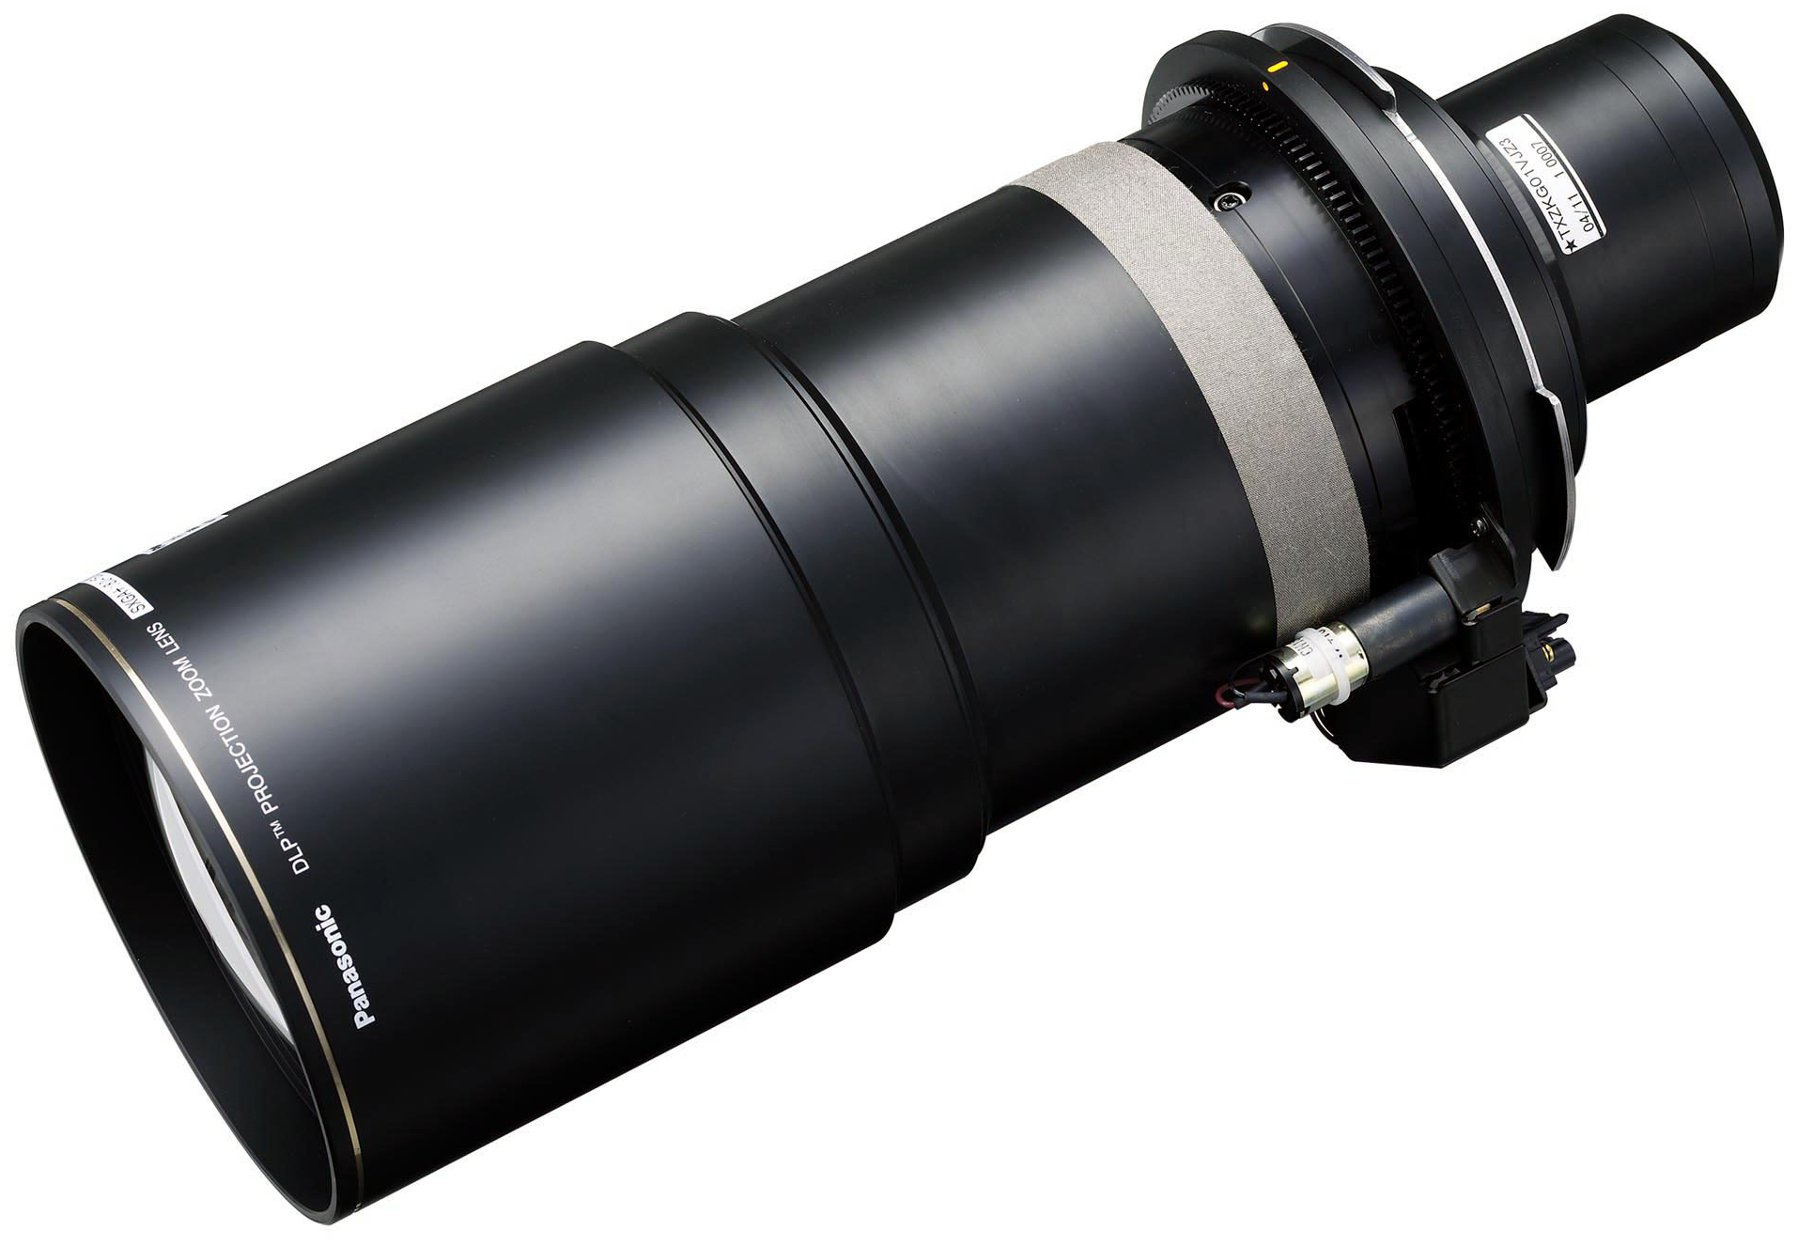 Approx. 8.0-15.0:1 Zoom Lens